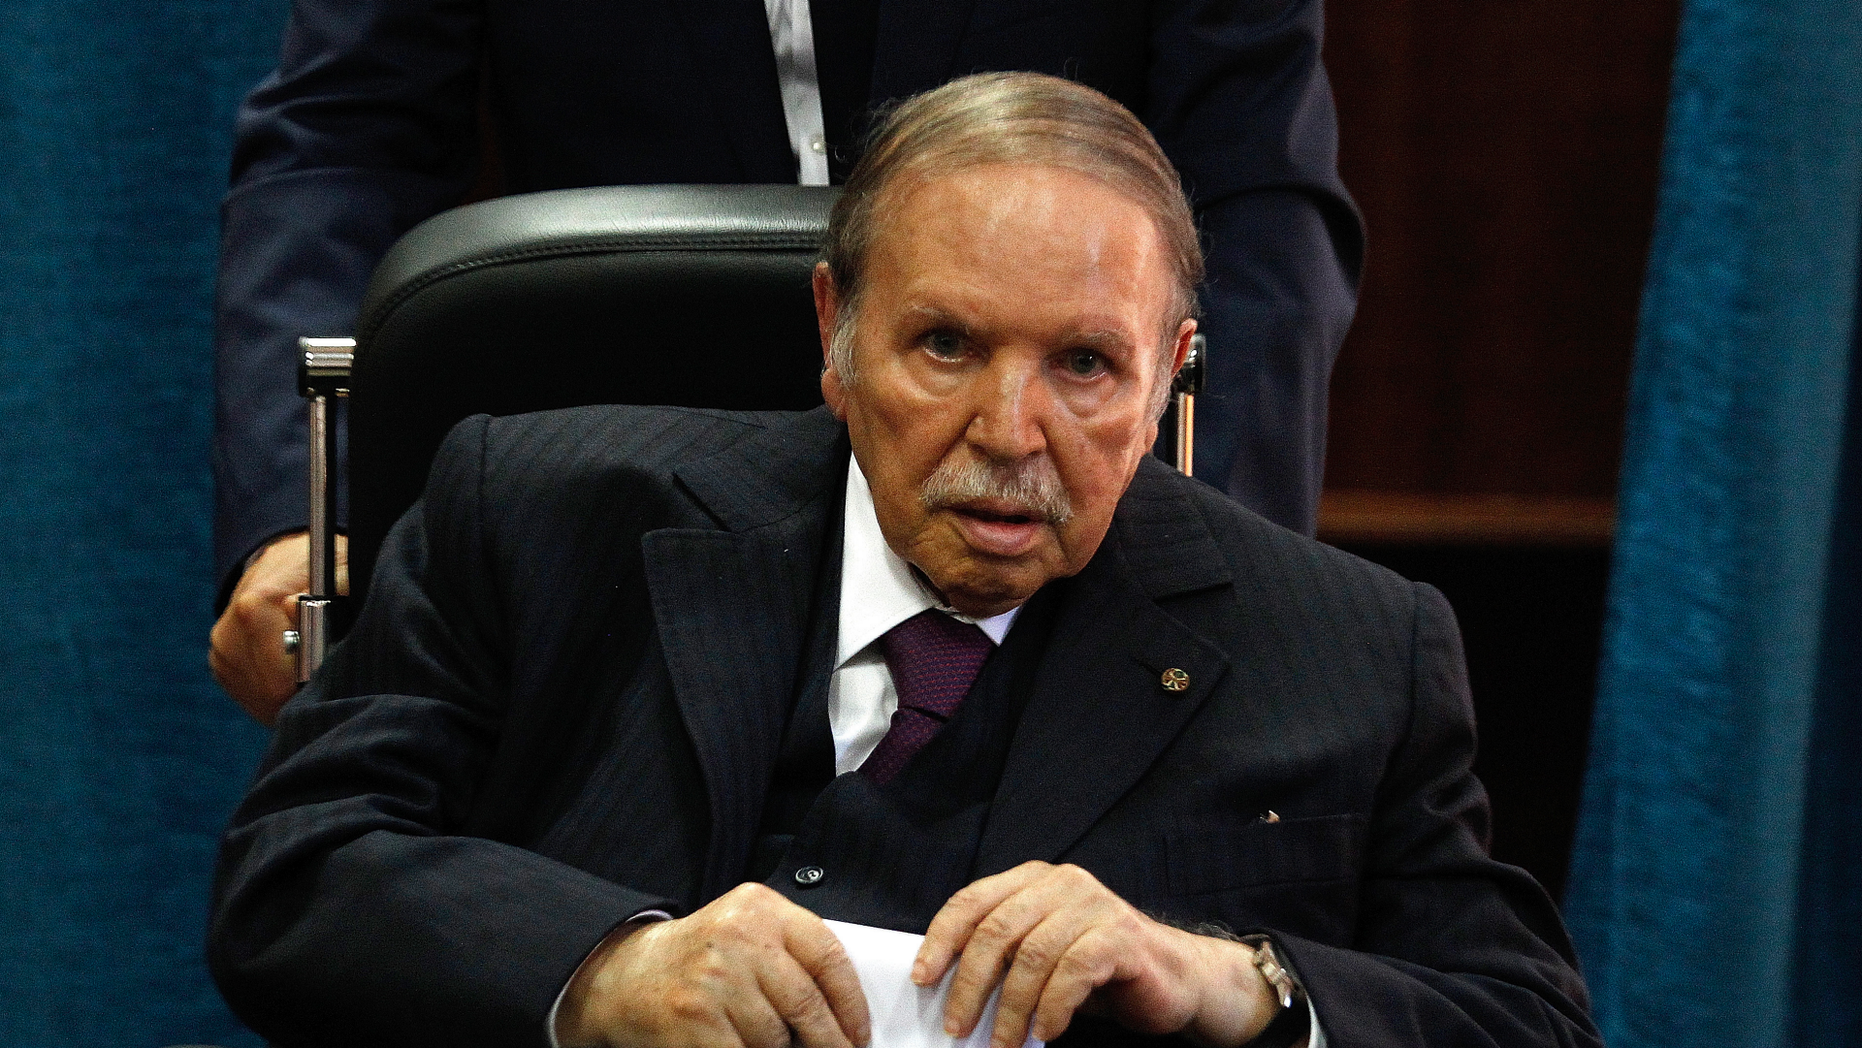 FILE - In this May 4, 2017 file photo, Algerian President Abdelaziz Bouteflika prepares to vote in Algiers. (AP Photo/Sidali Djarboub, File)